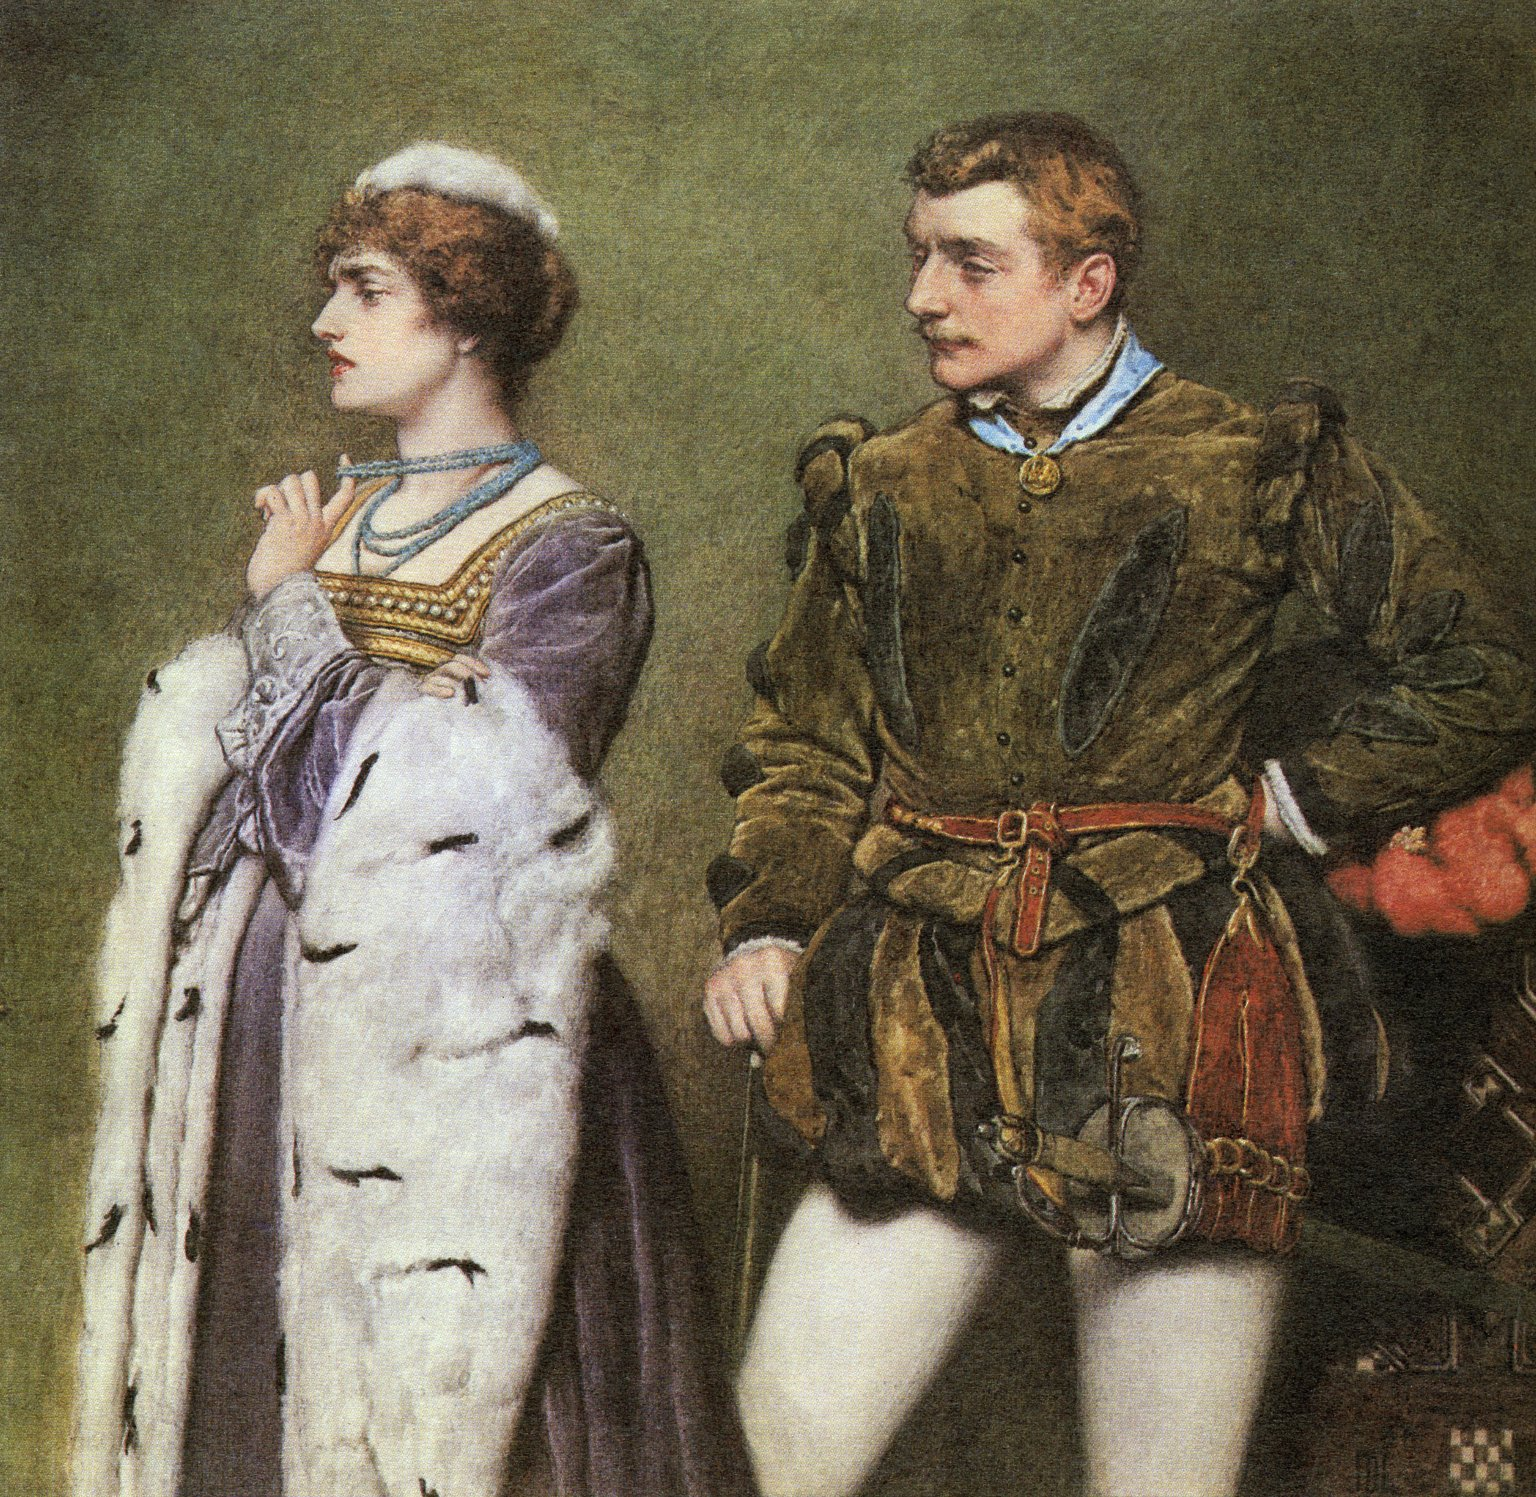 [Taming of the Shrew, Katherine and Petruchio] [graphic] / J.D.L.